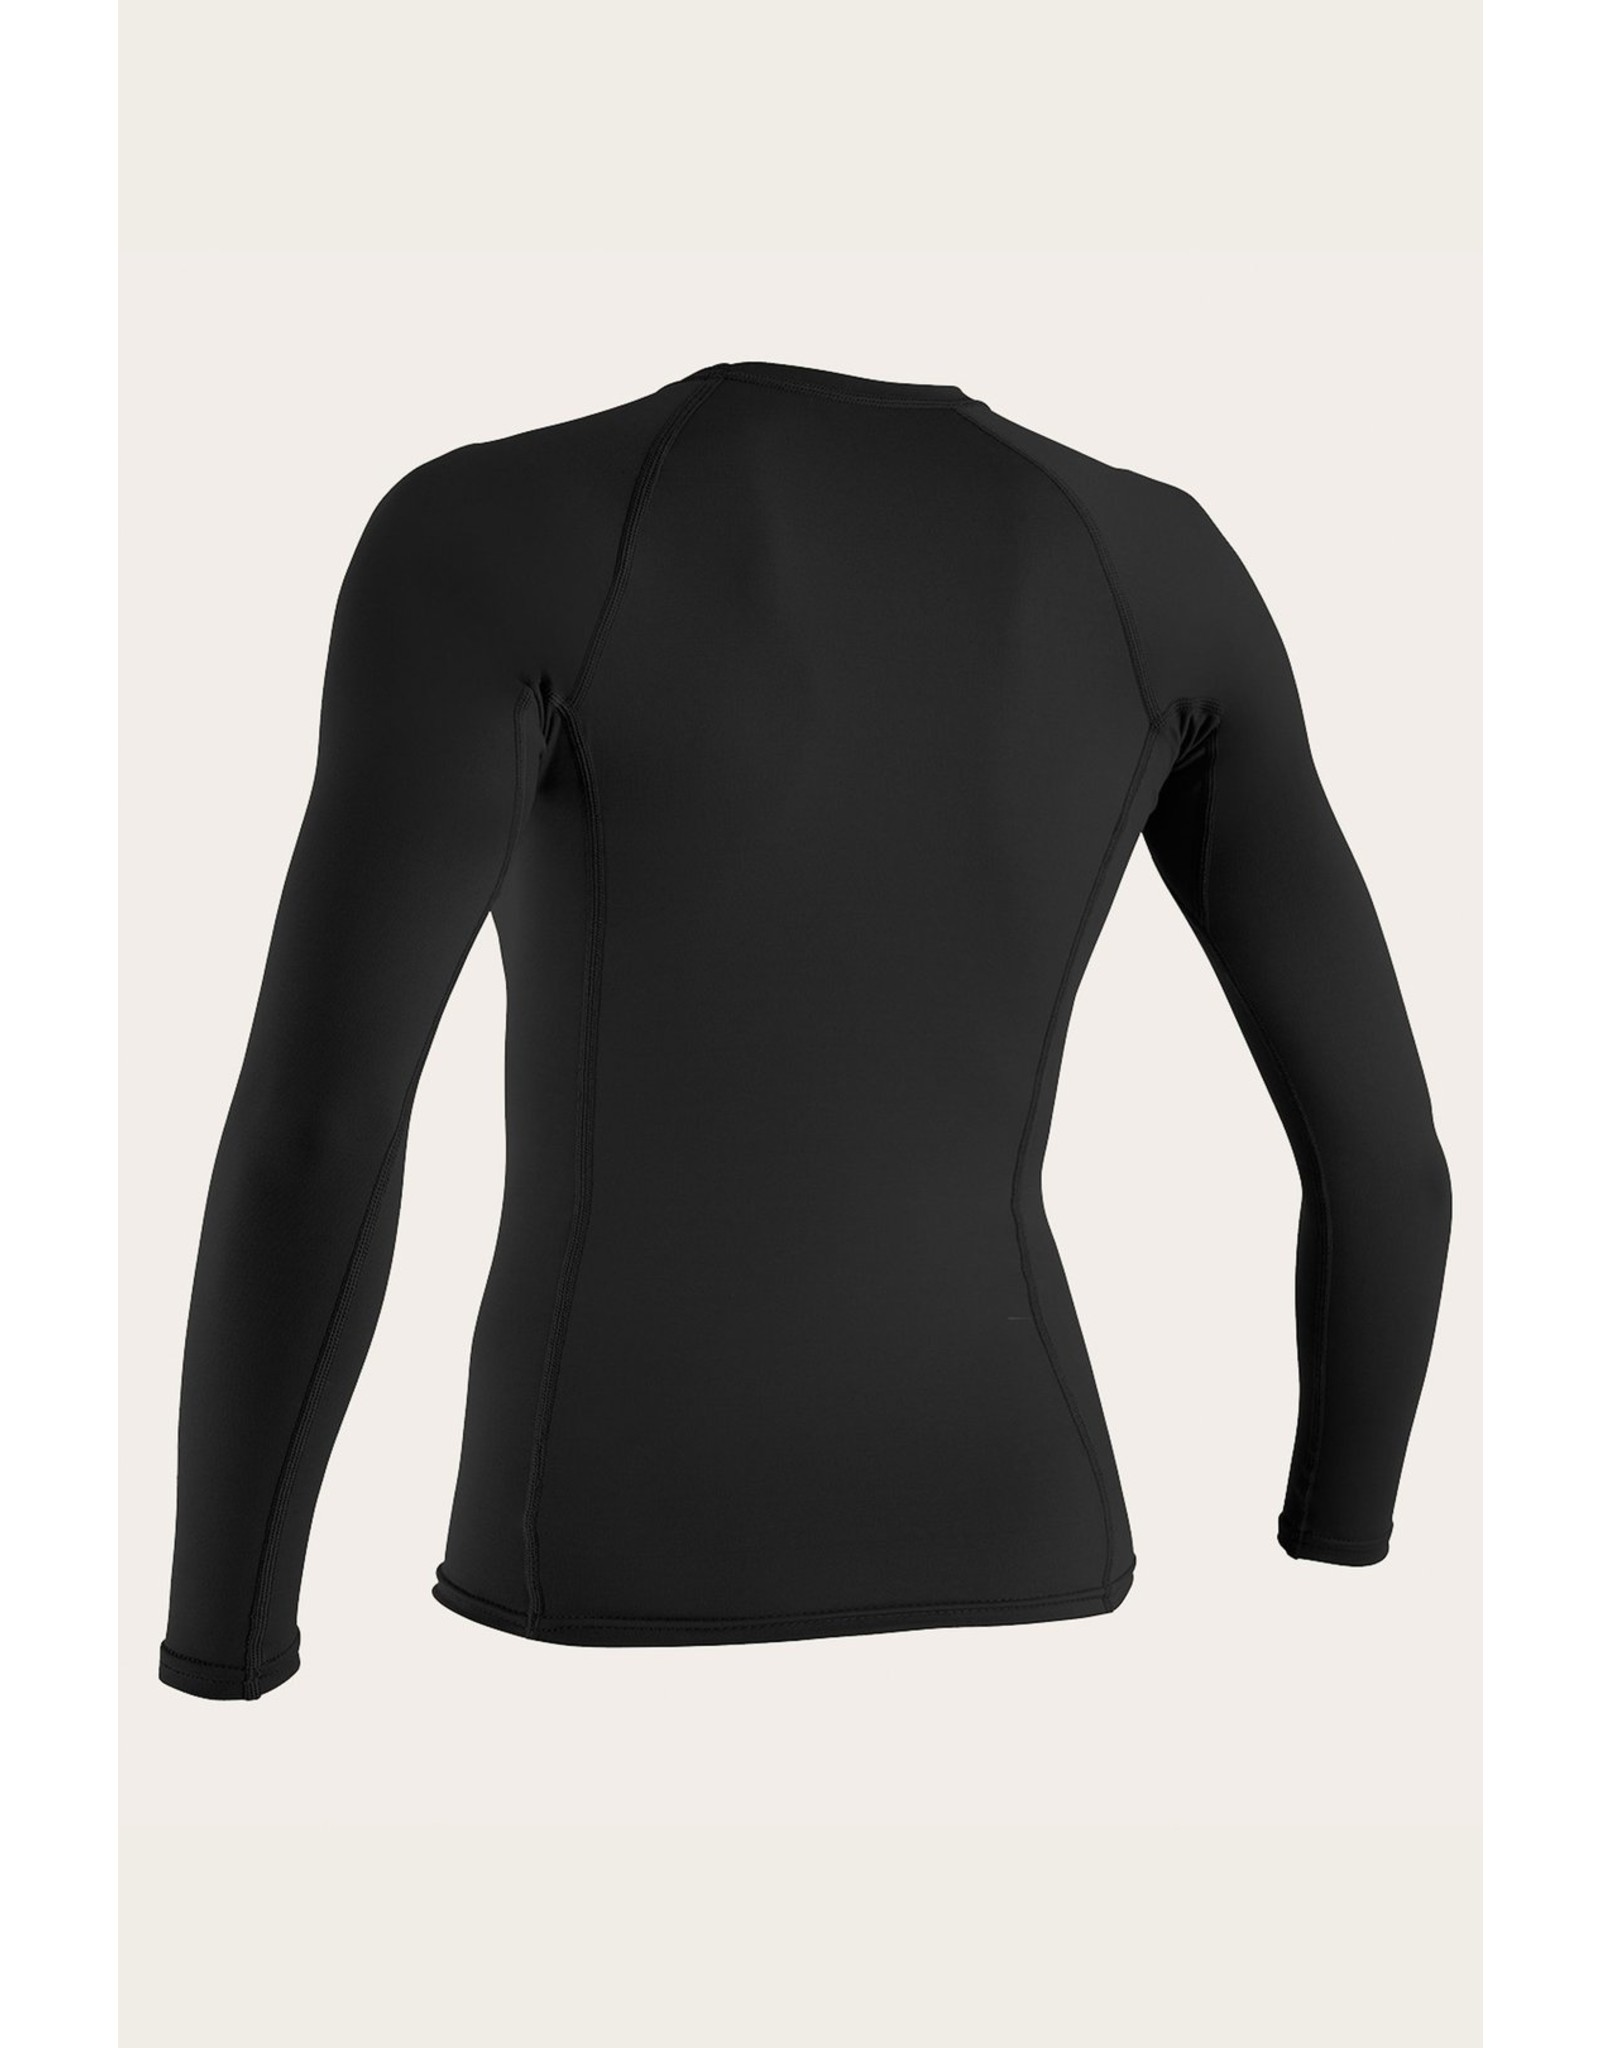 O'NEILL O'NEILL BASIC SKINS WOMEN LONG SLEEVE RASHGUARD